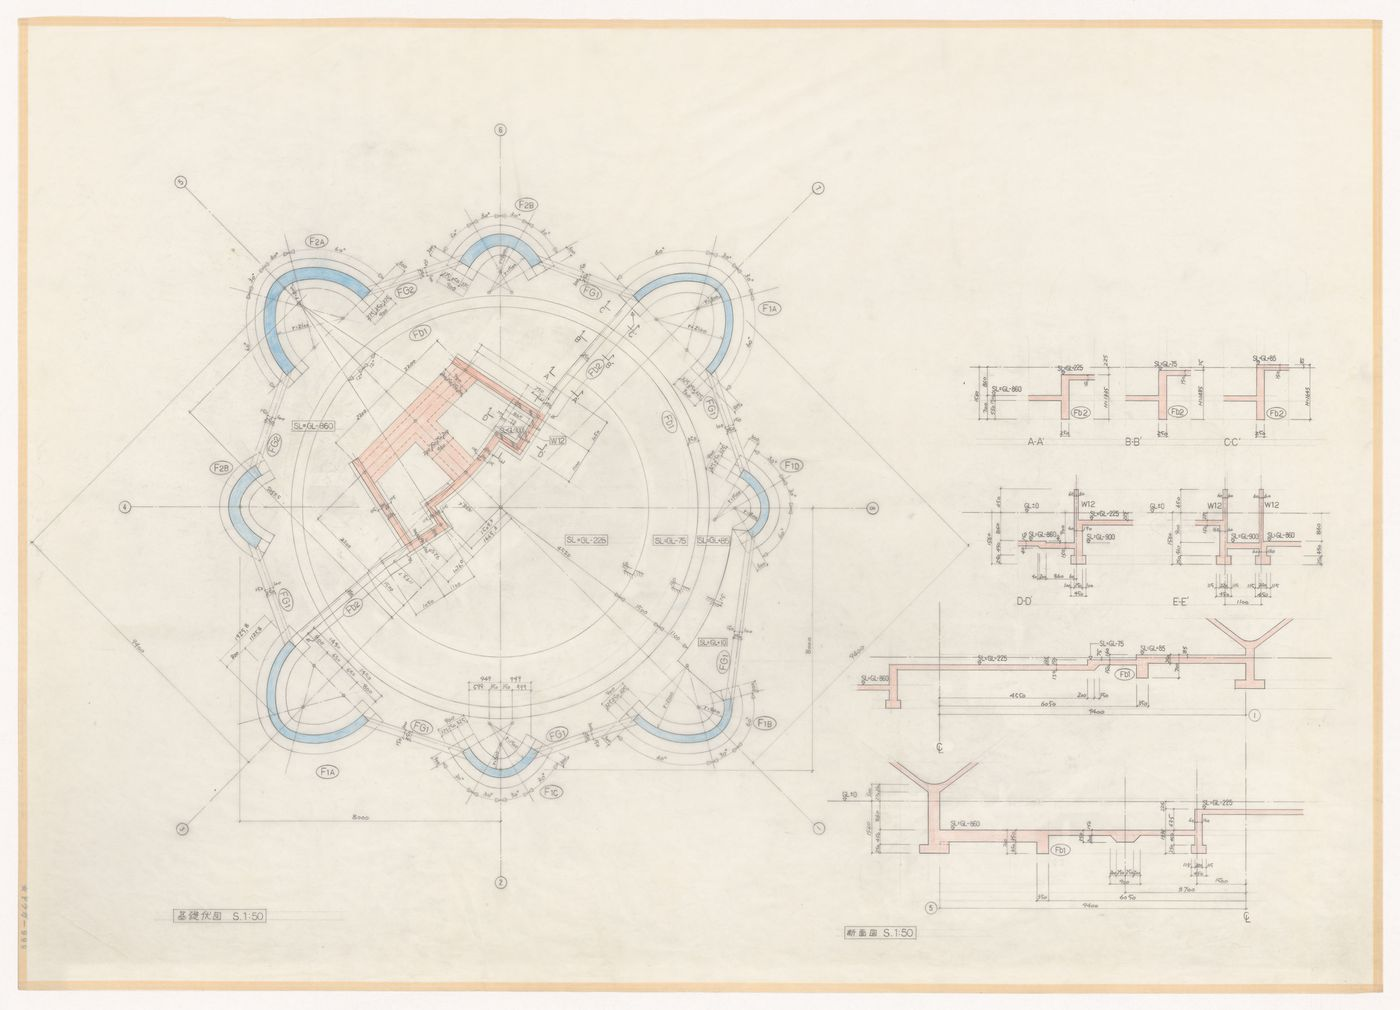 Plan and details for Naiju Community Center and Nursery School, Fukuoka Prefecture, Japan